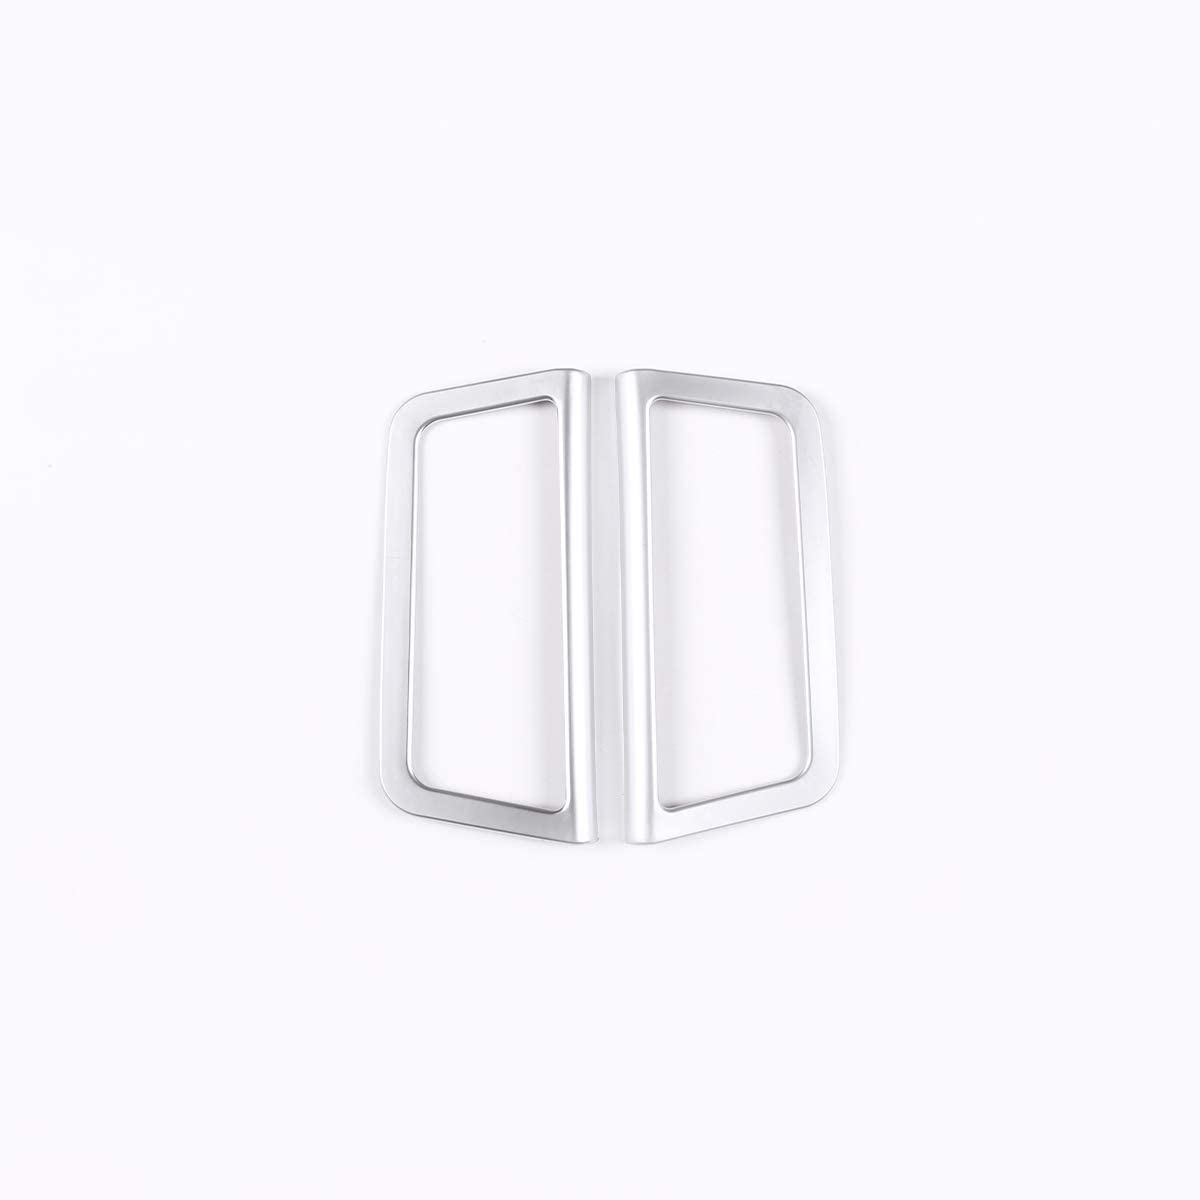 CHEYA ABS Chrome Car Tail Door Handle Decoration Cover Trim For Land Rover Range Rover Evoque 2020